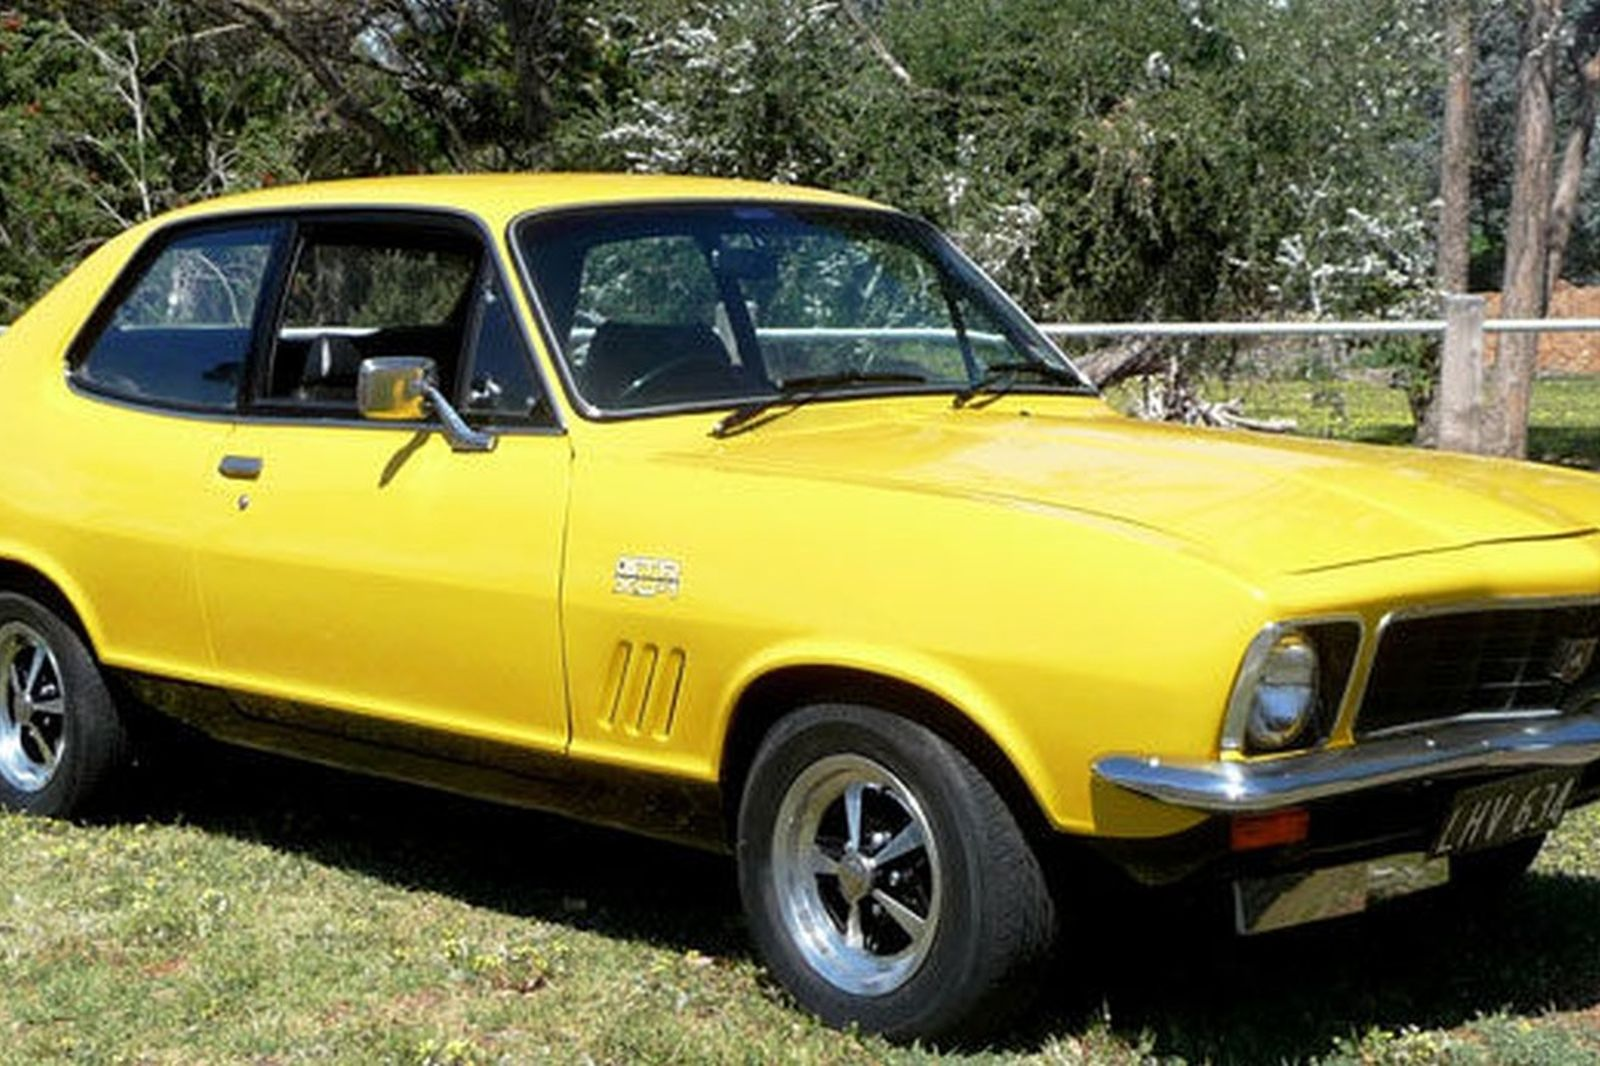 Holden Lj Torana Xu 1 Coupe Auctions Lot 22 Shannons